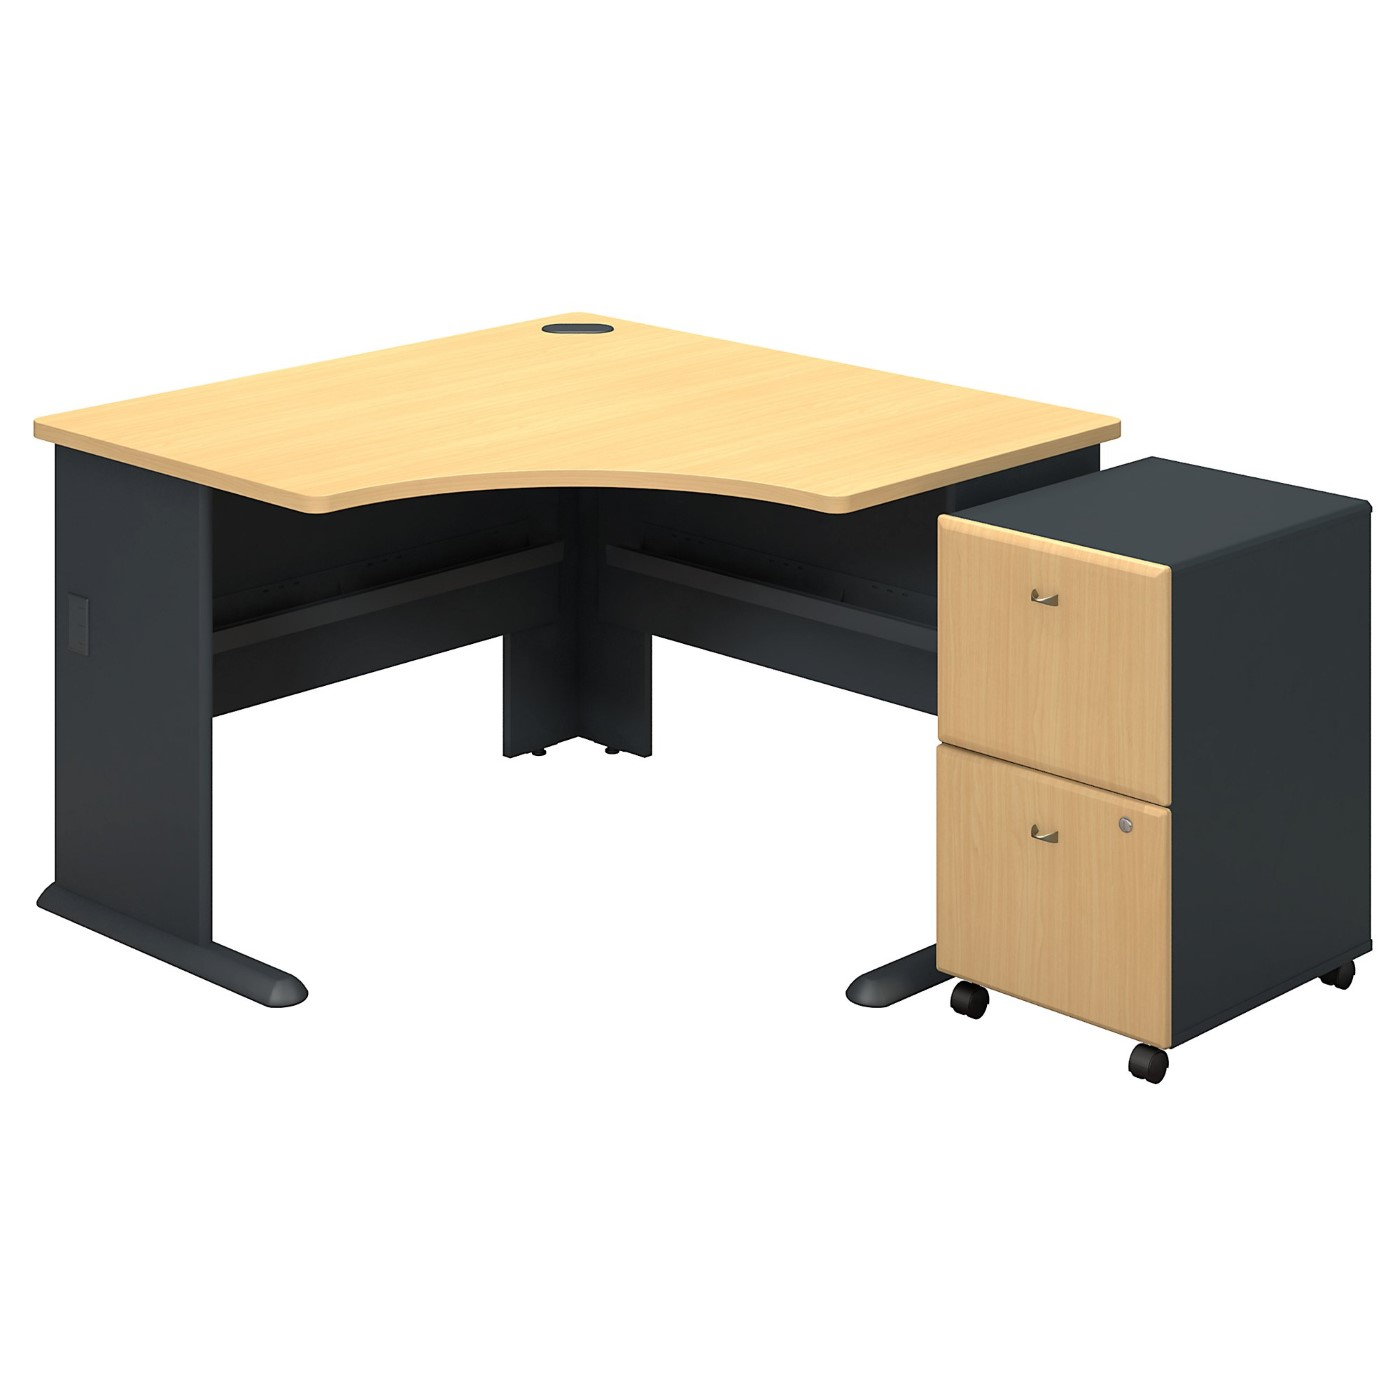 BUSH BUSINESS FURNITURE SERIES A CORNER DESK WITH 2DWR MOBILE PEDESTAL. FREE SHIPPING SALE DEDUCT 10% MORE ENTER '10percent' IN COUPON CODE BOX WHILE CHECKING OUT.